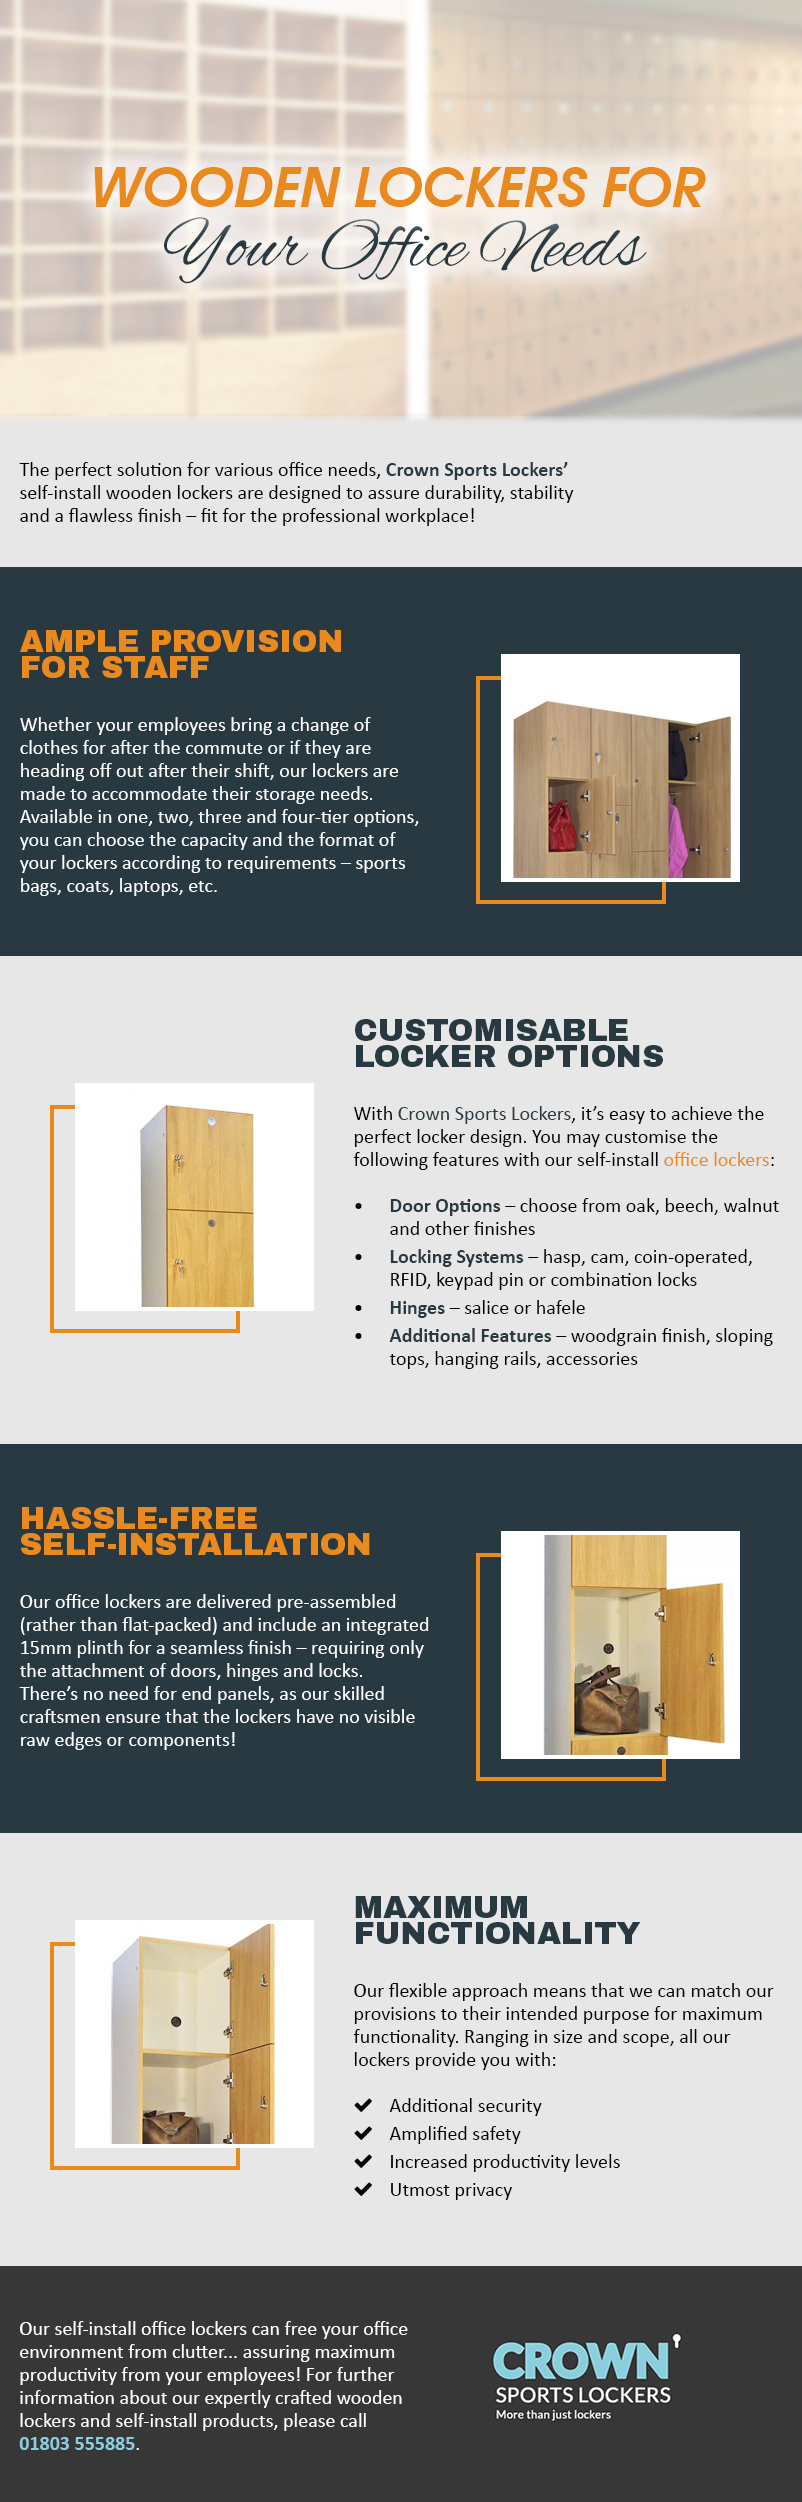 Wooden Lockers for Your Office Needs